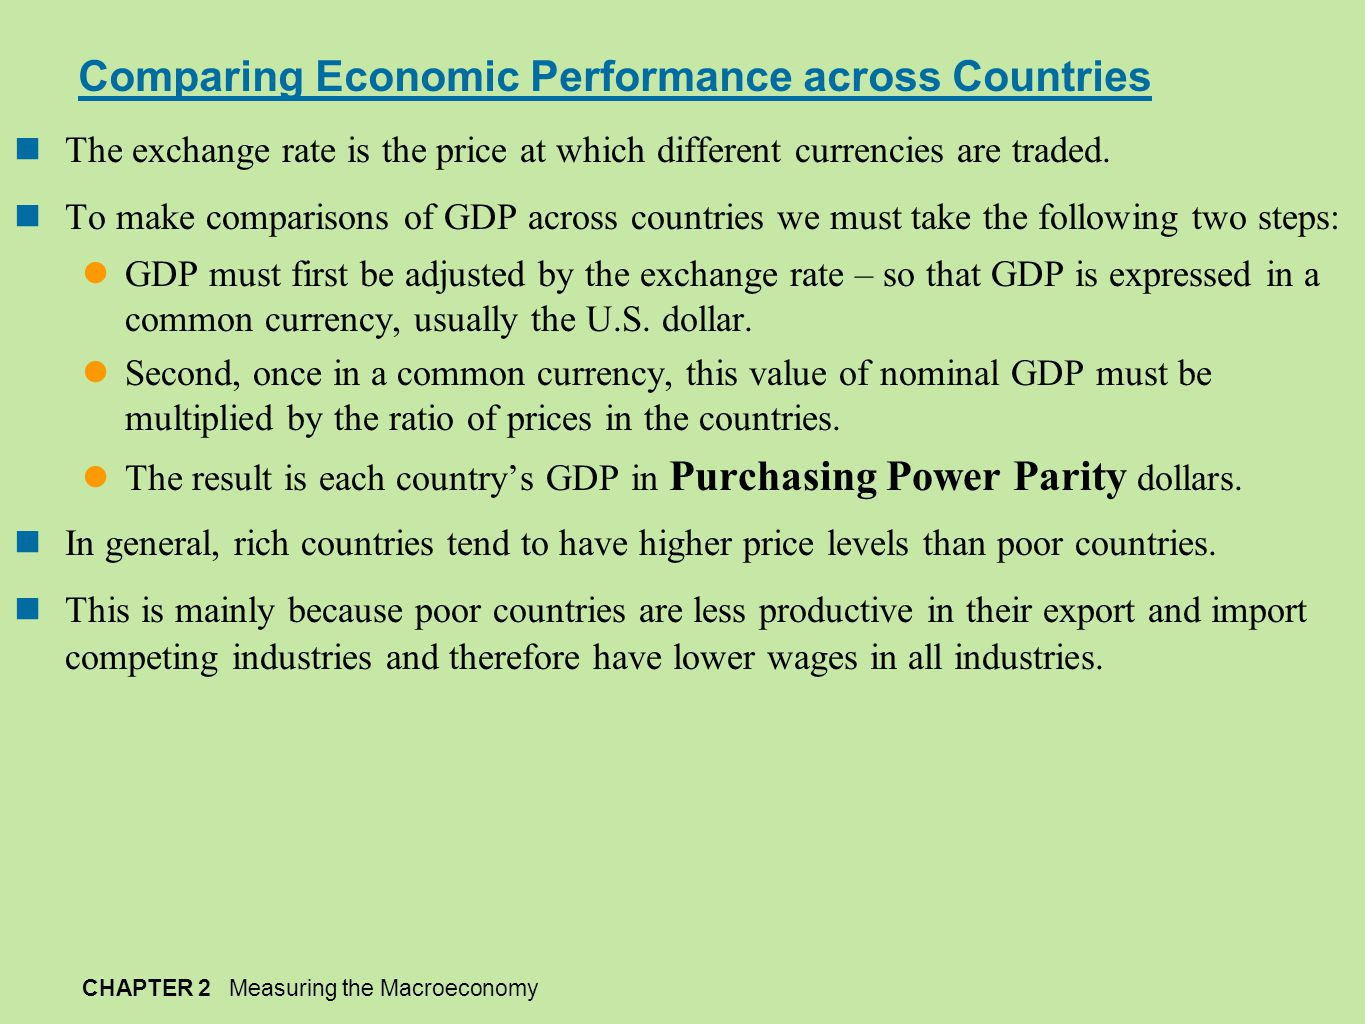 Comparing Economic Performance across Countries